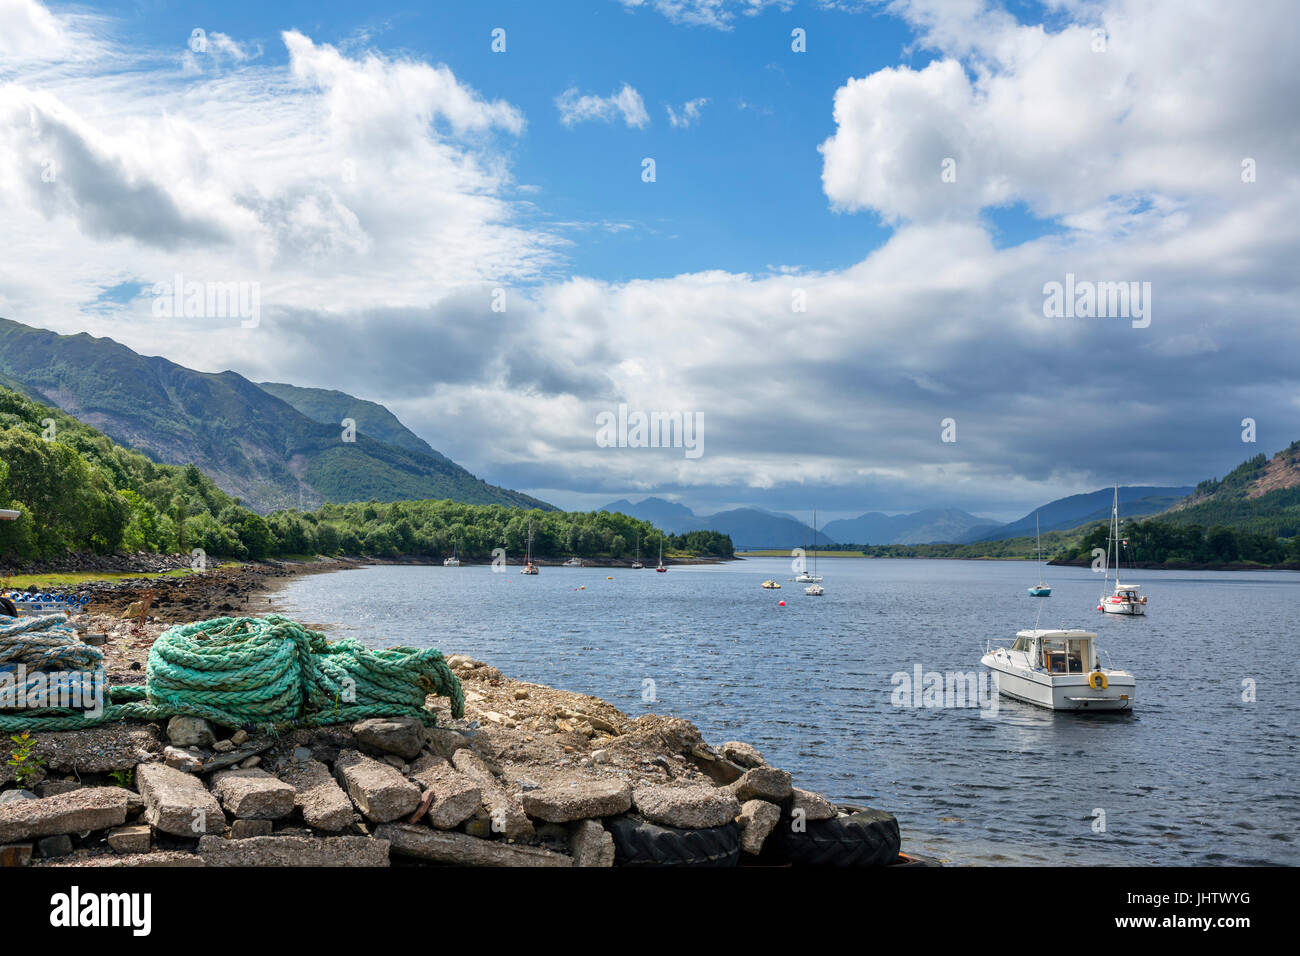 Loch Leven (Loch Lyon), a sea loch near the village of Glencoe, Scottish Highlands, Scotland, UK - Stock Image